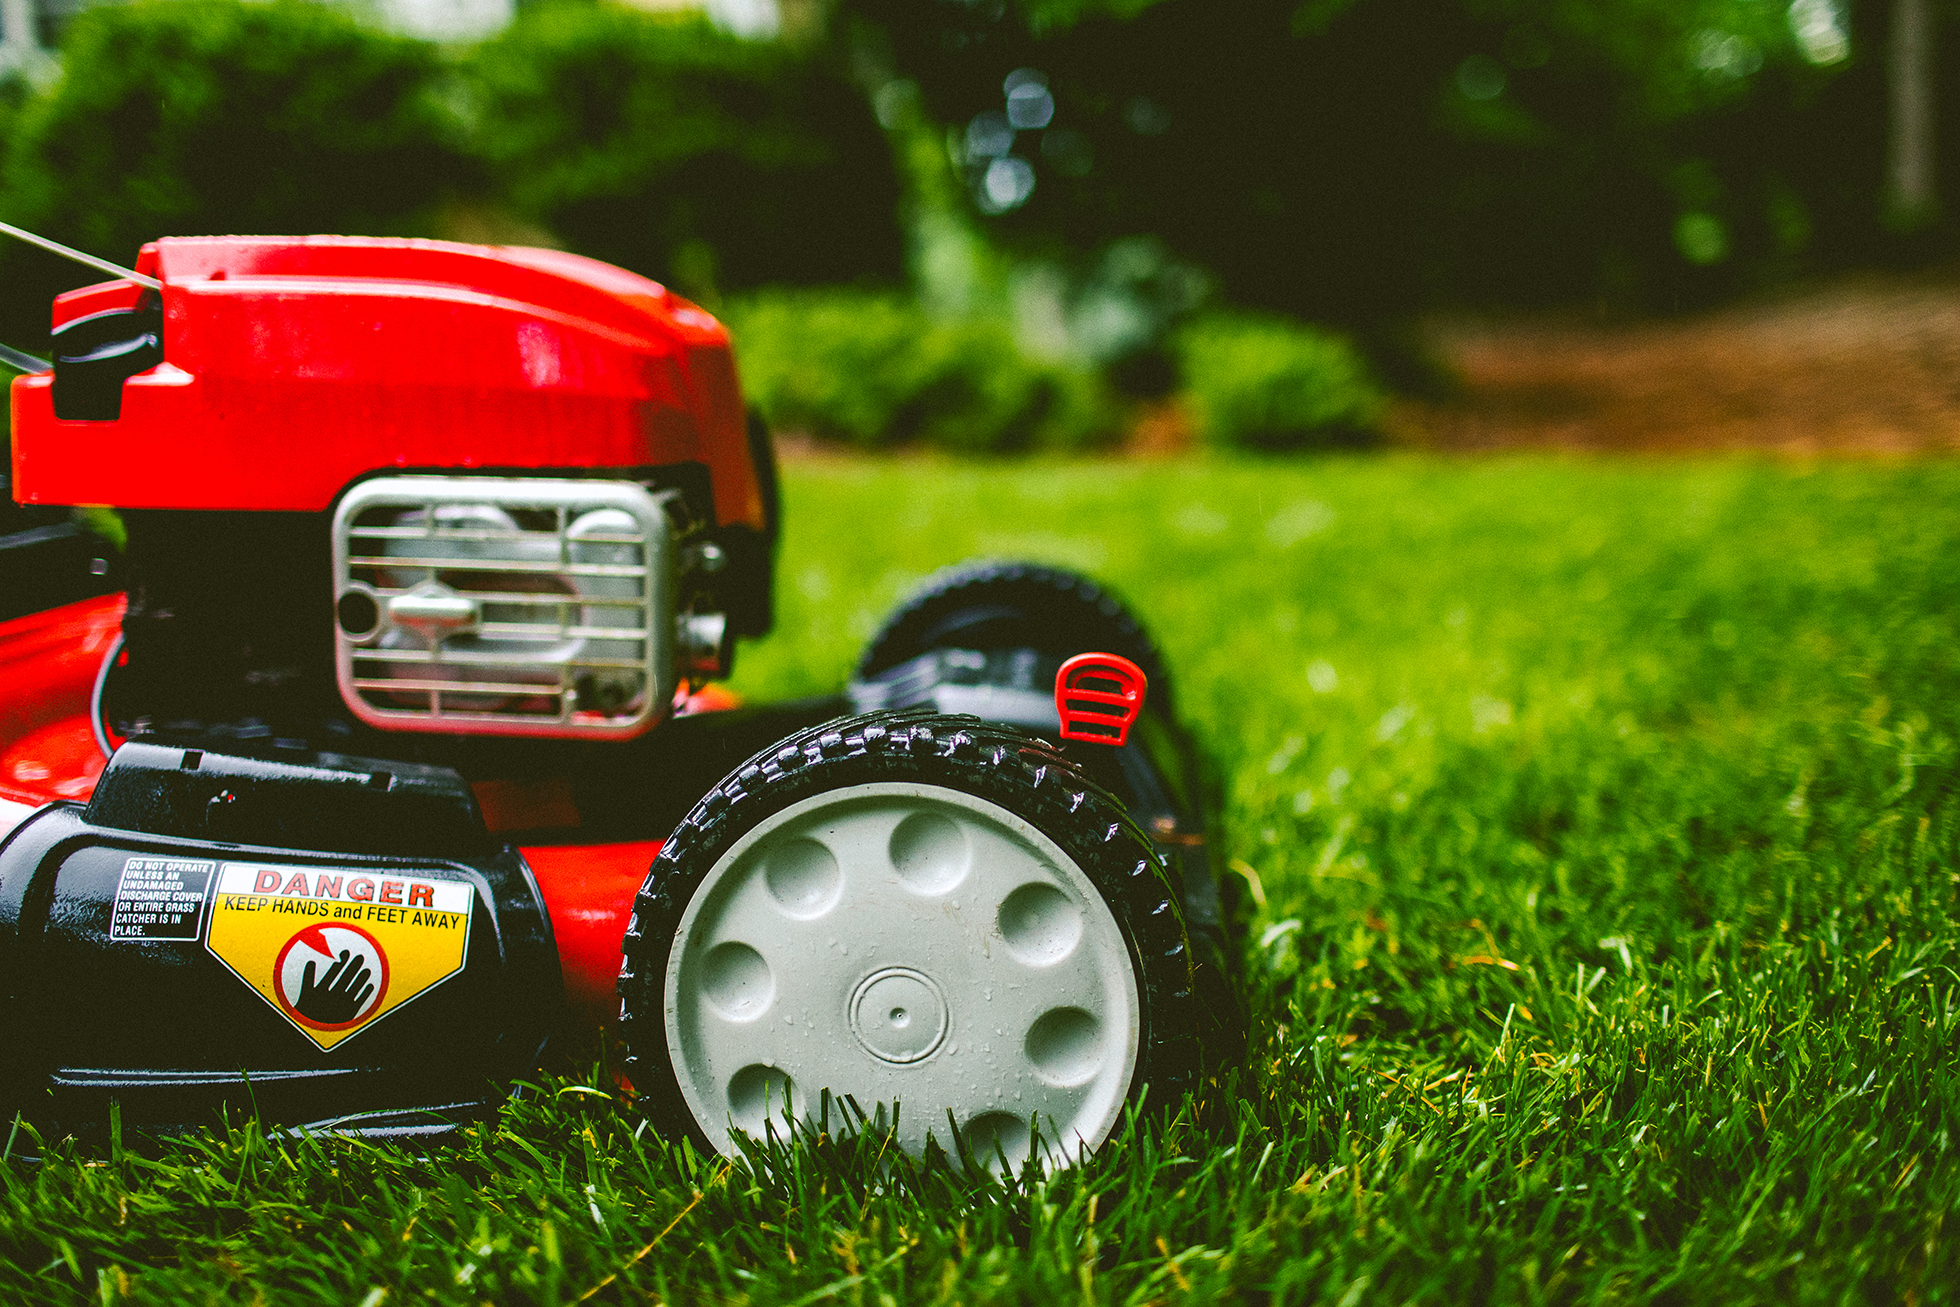 Close up of red lawn mower on lush green lawn